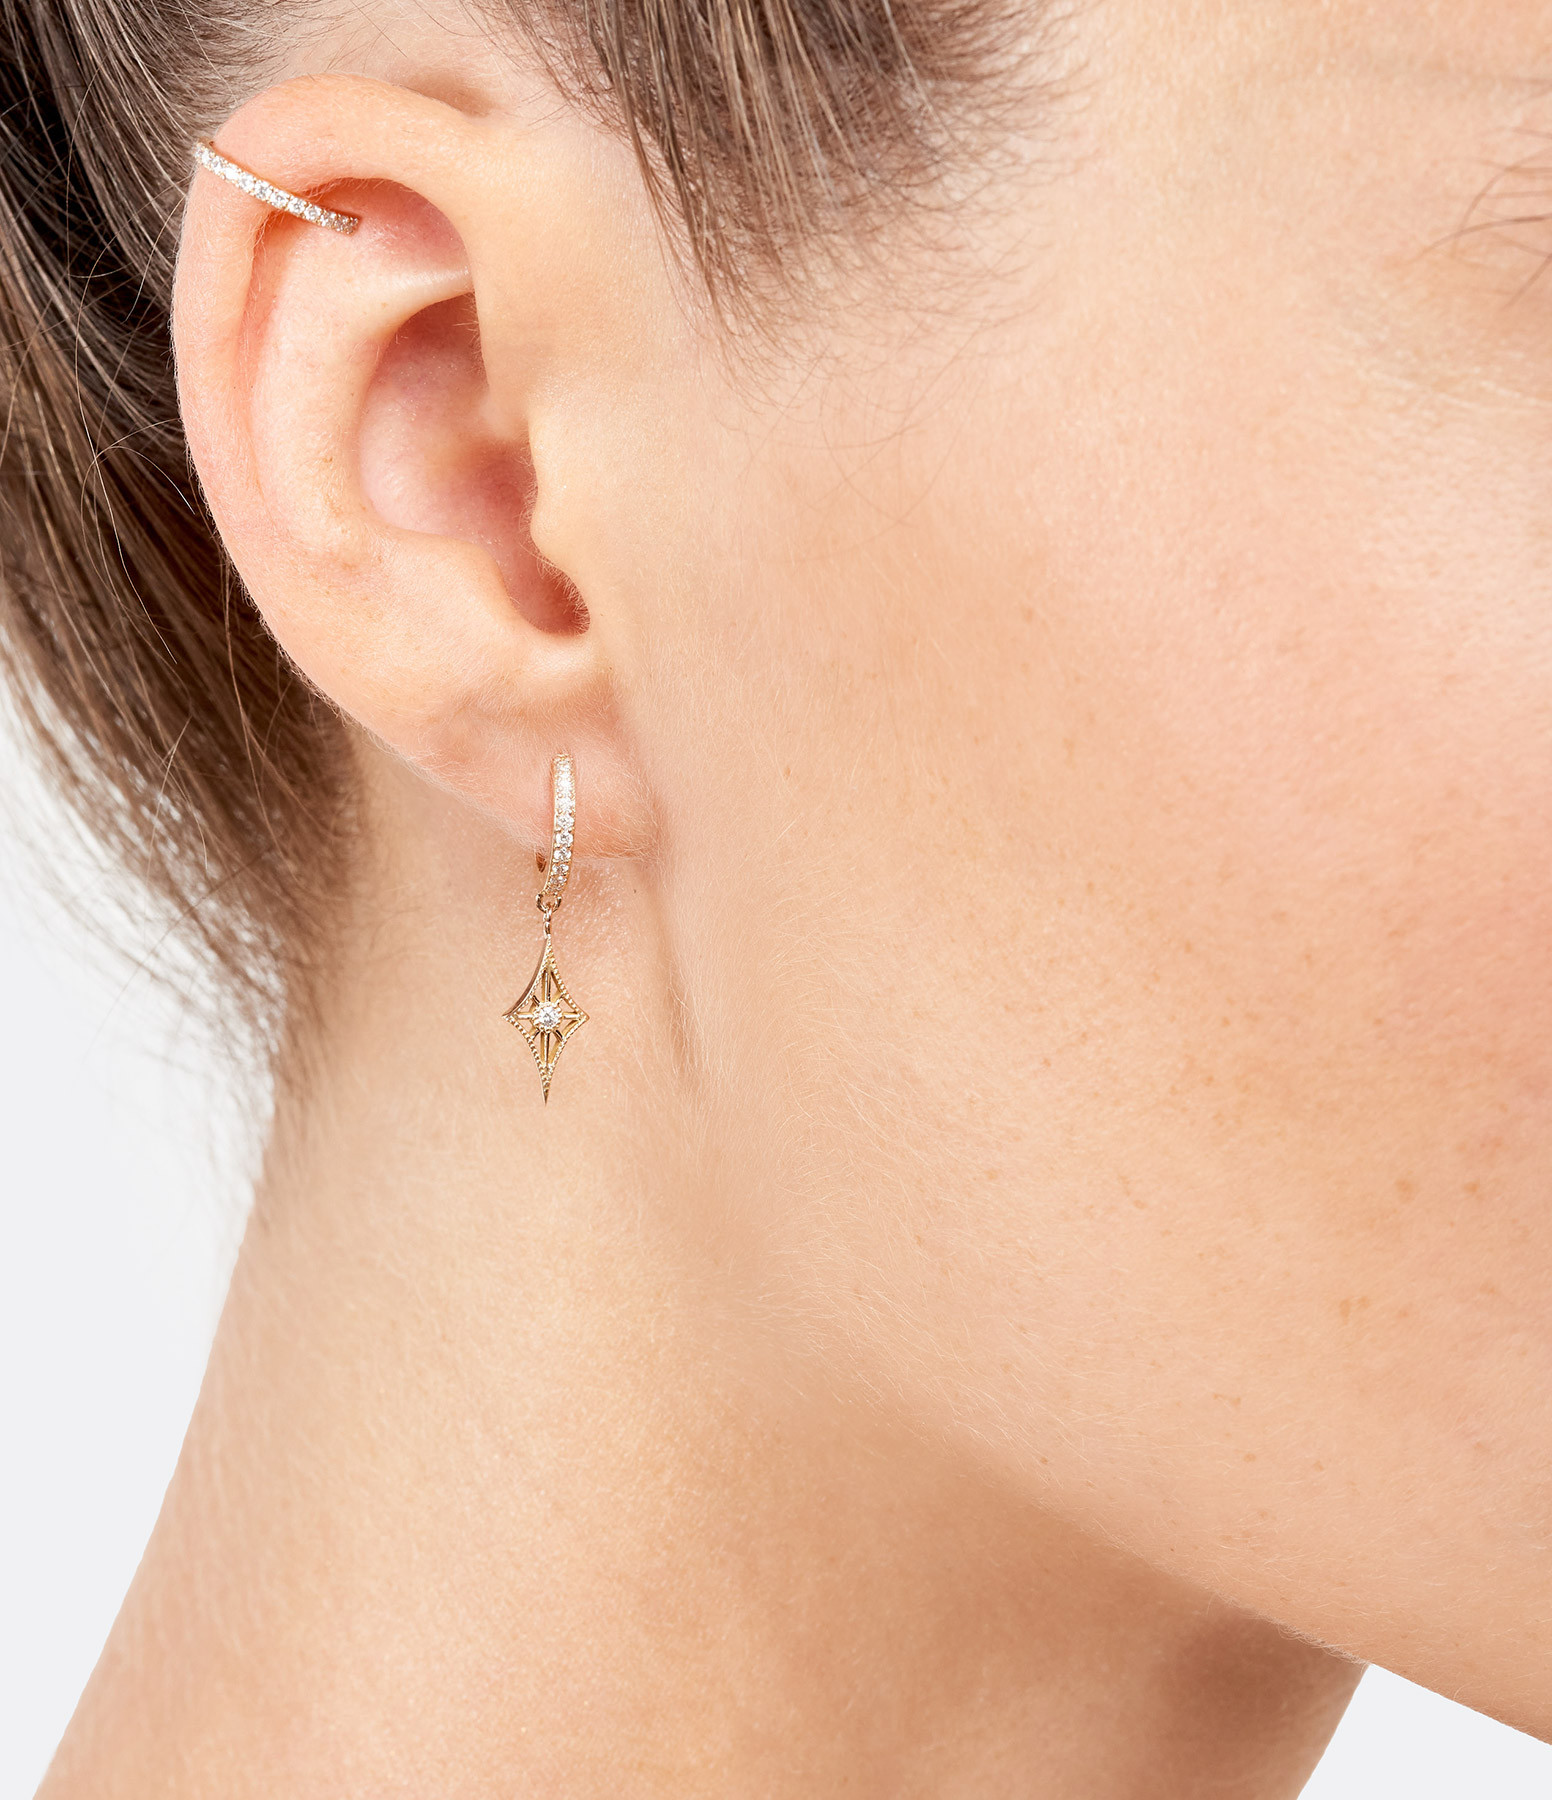 NAVA JOAILLERIE - Bijou d'oreille Hash Diamants Or Jaune